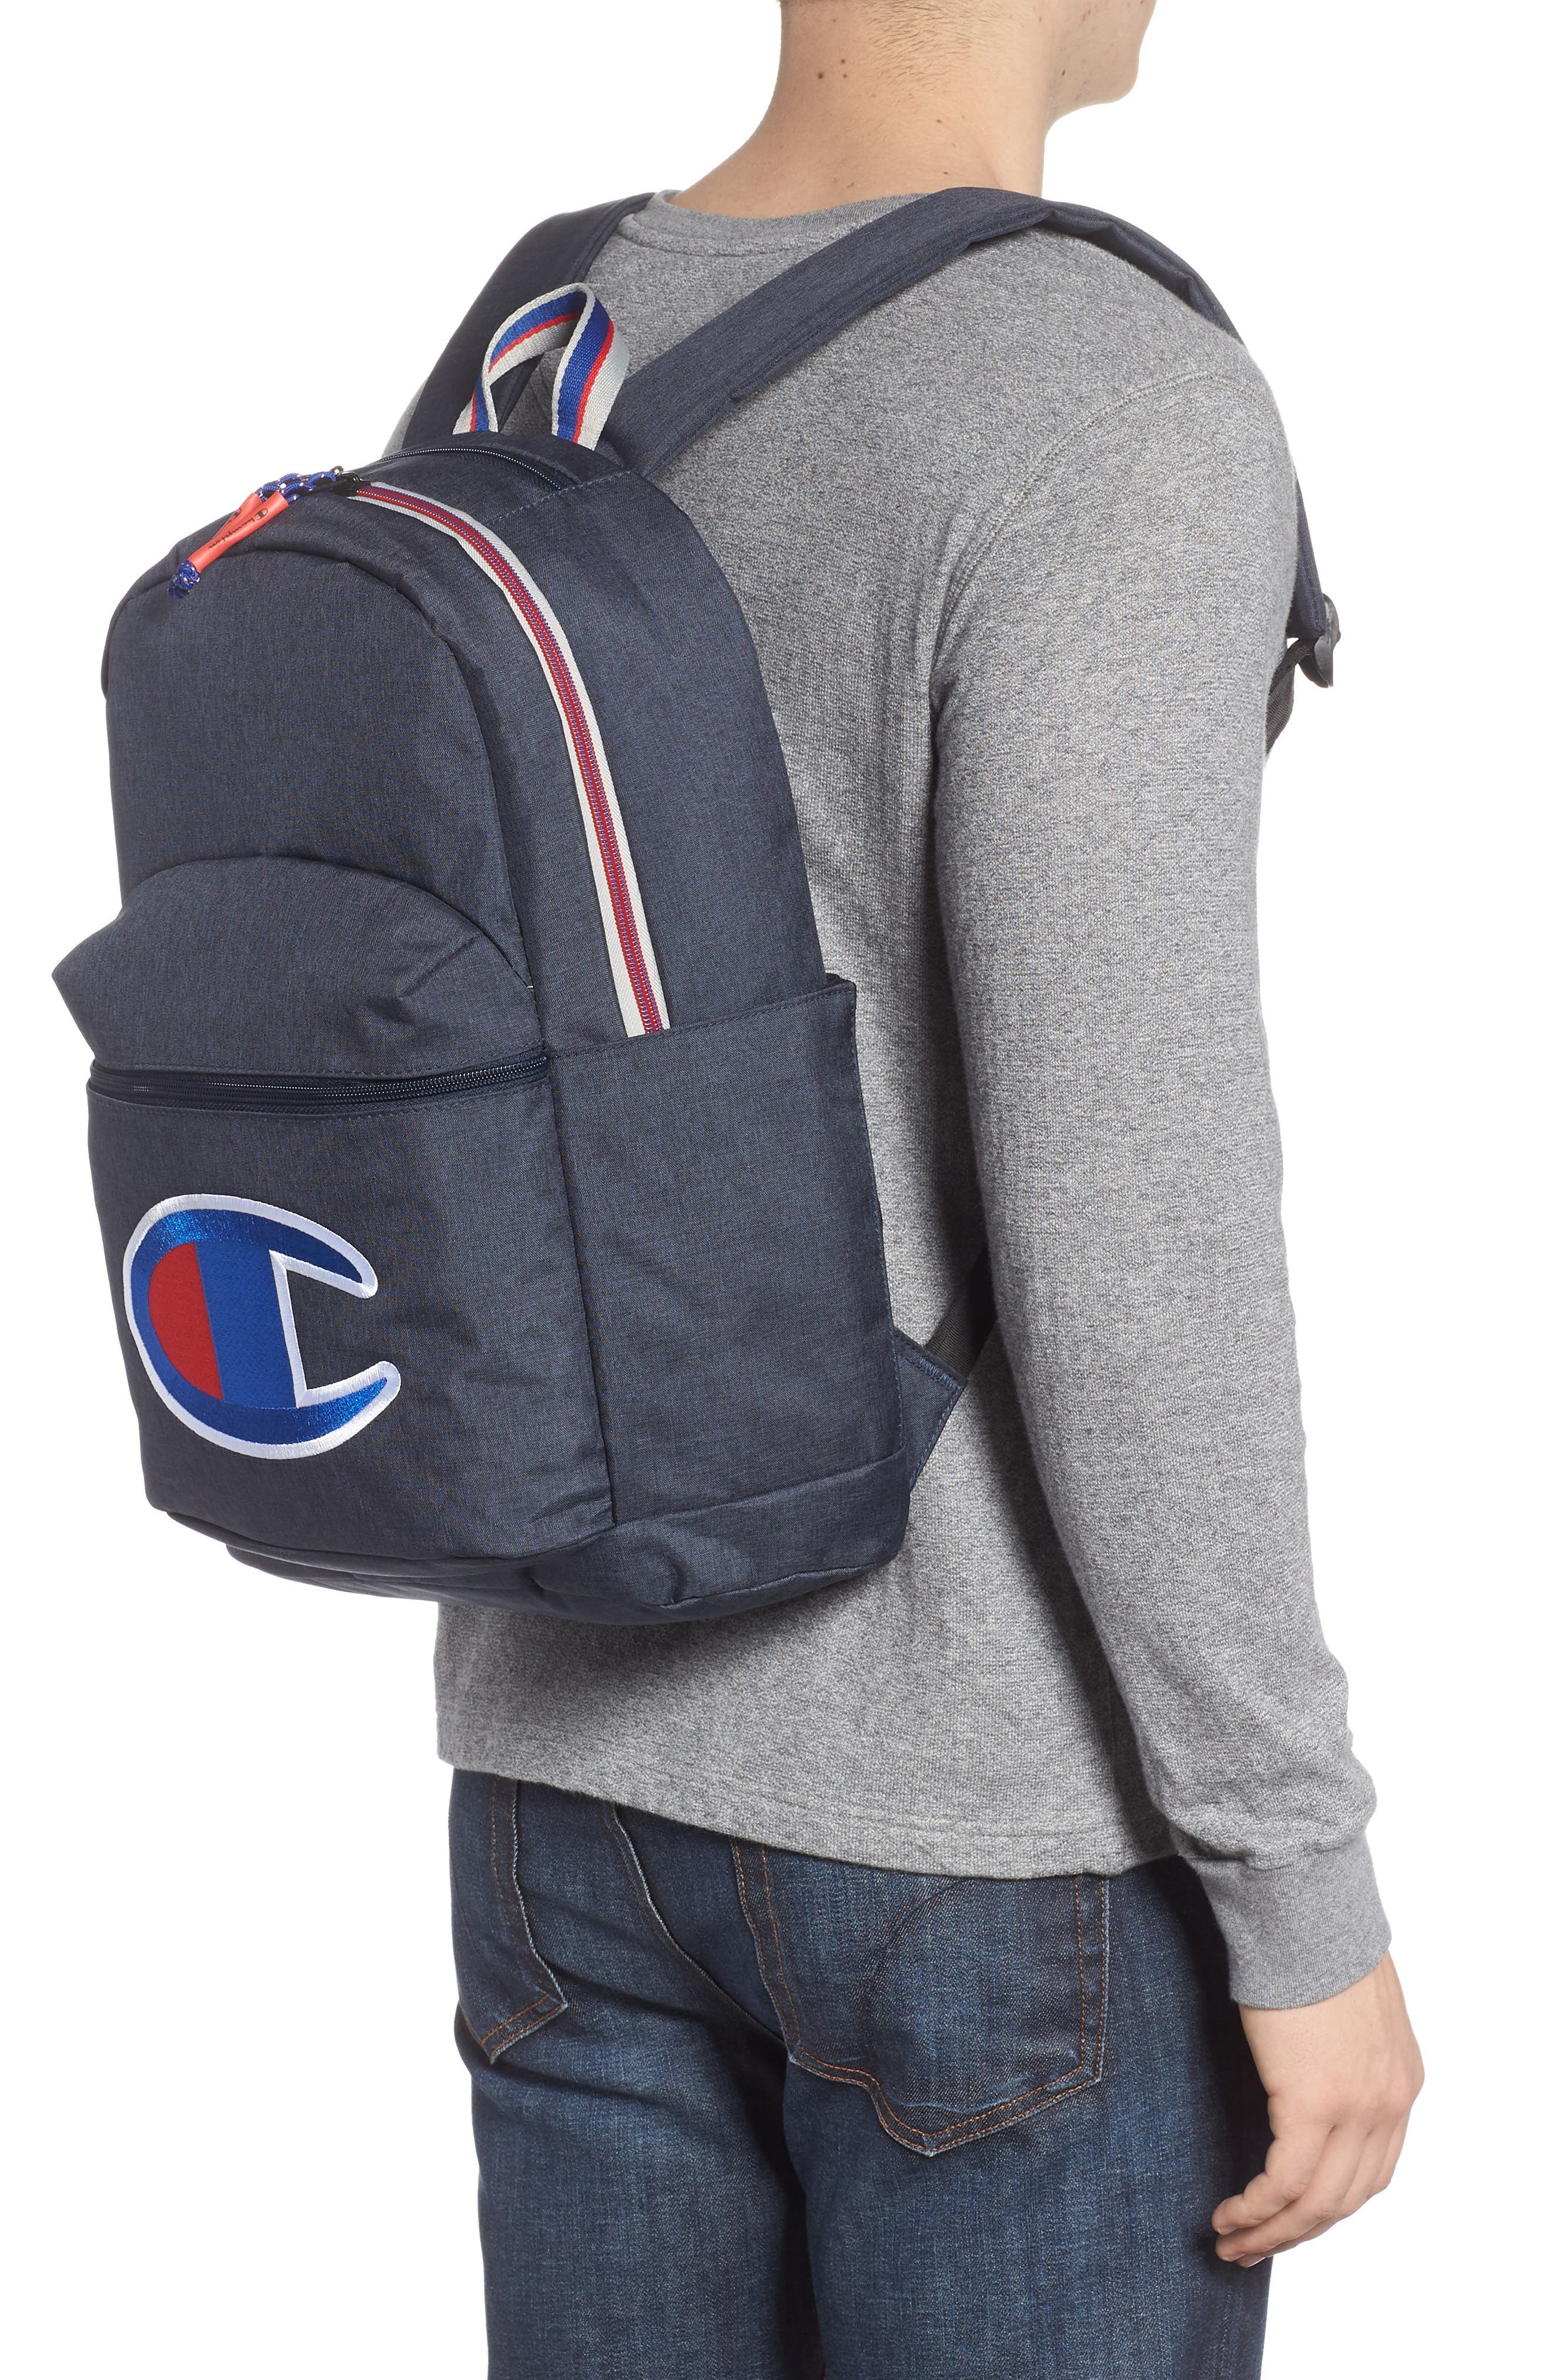 Supercize Backpack,                             Alternate thumbnail 2, color,                             Navy Heather